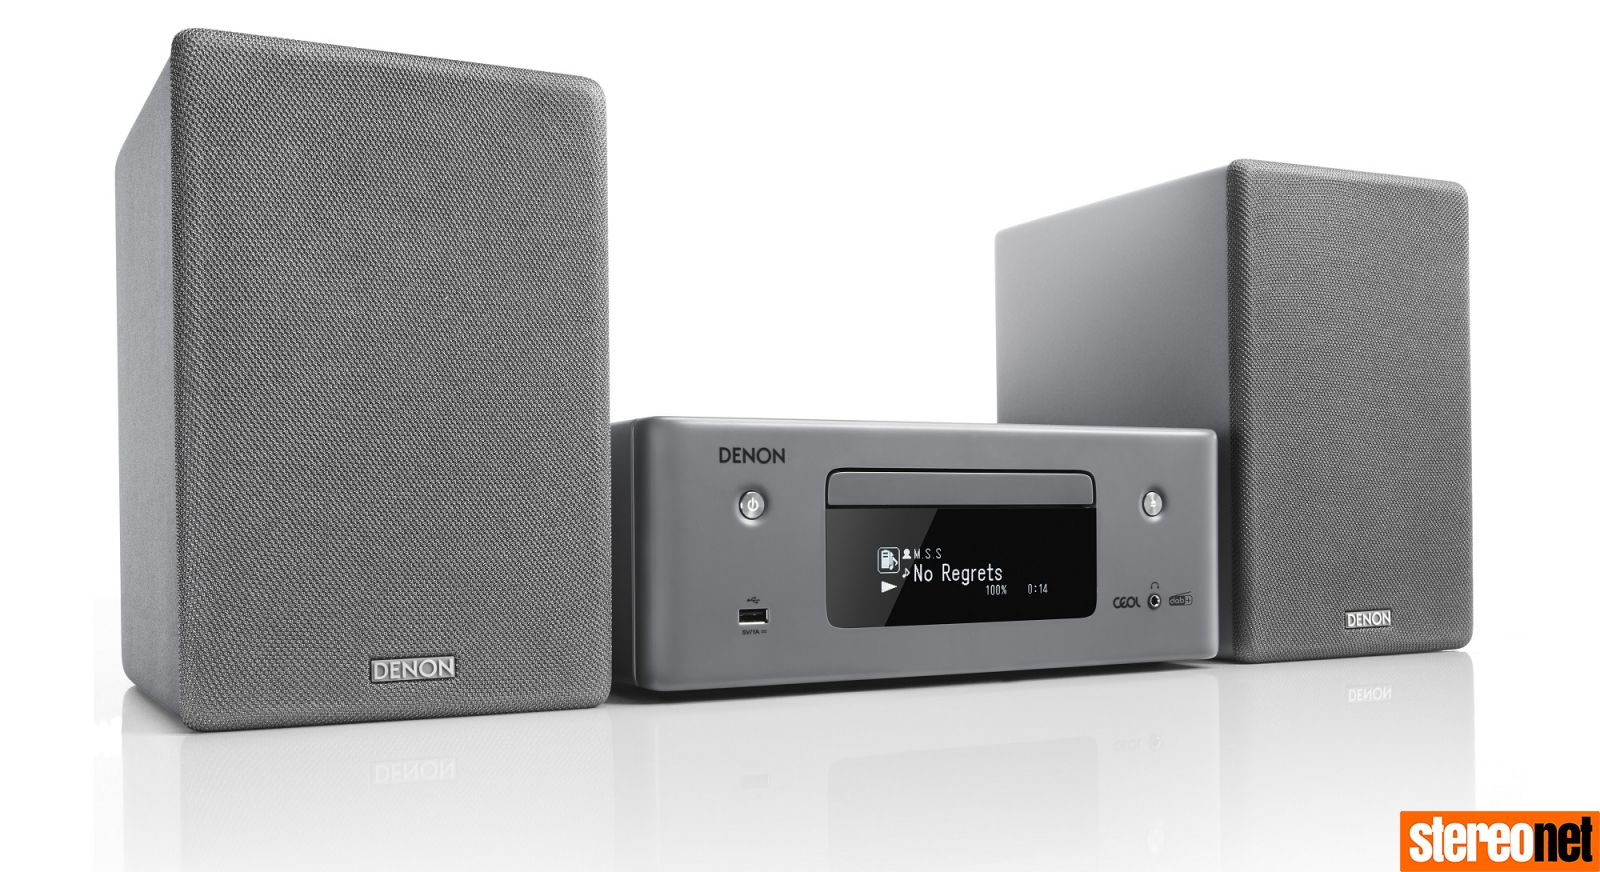 Denon CEOL N11 DAB uk hifi news